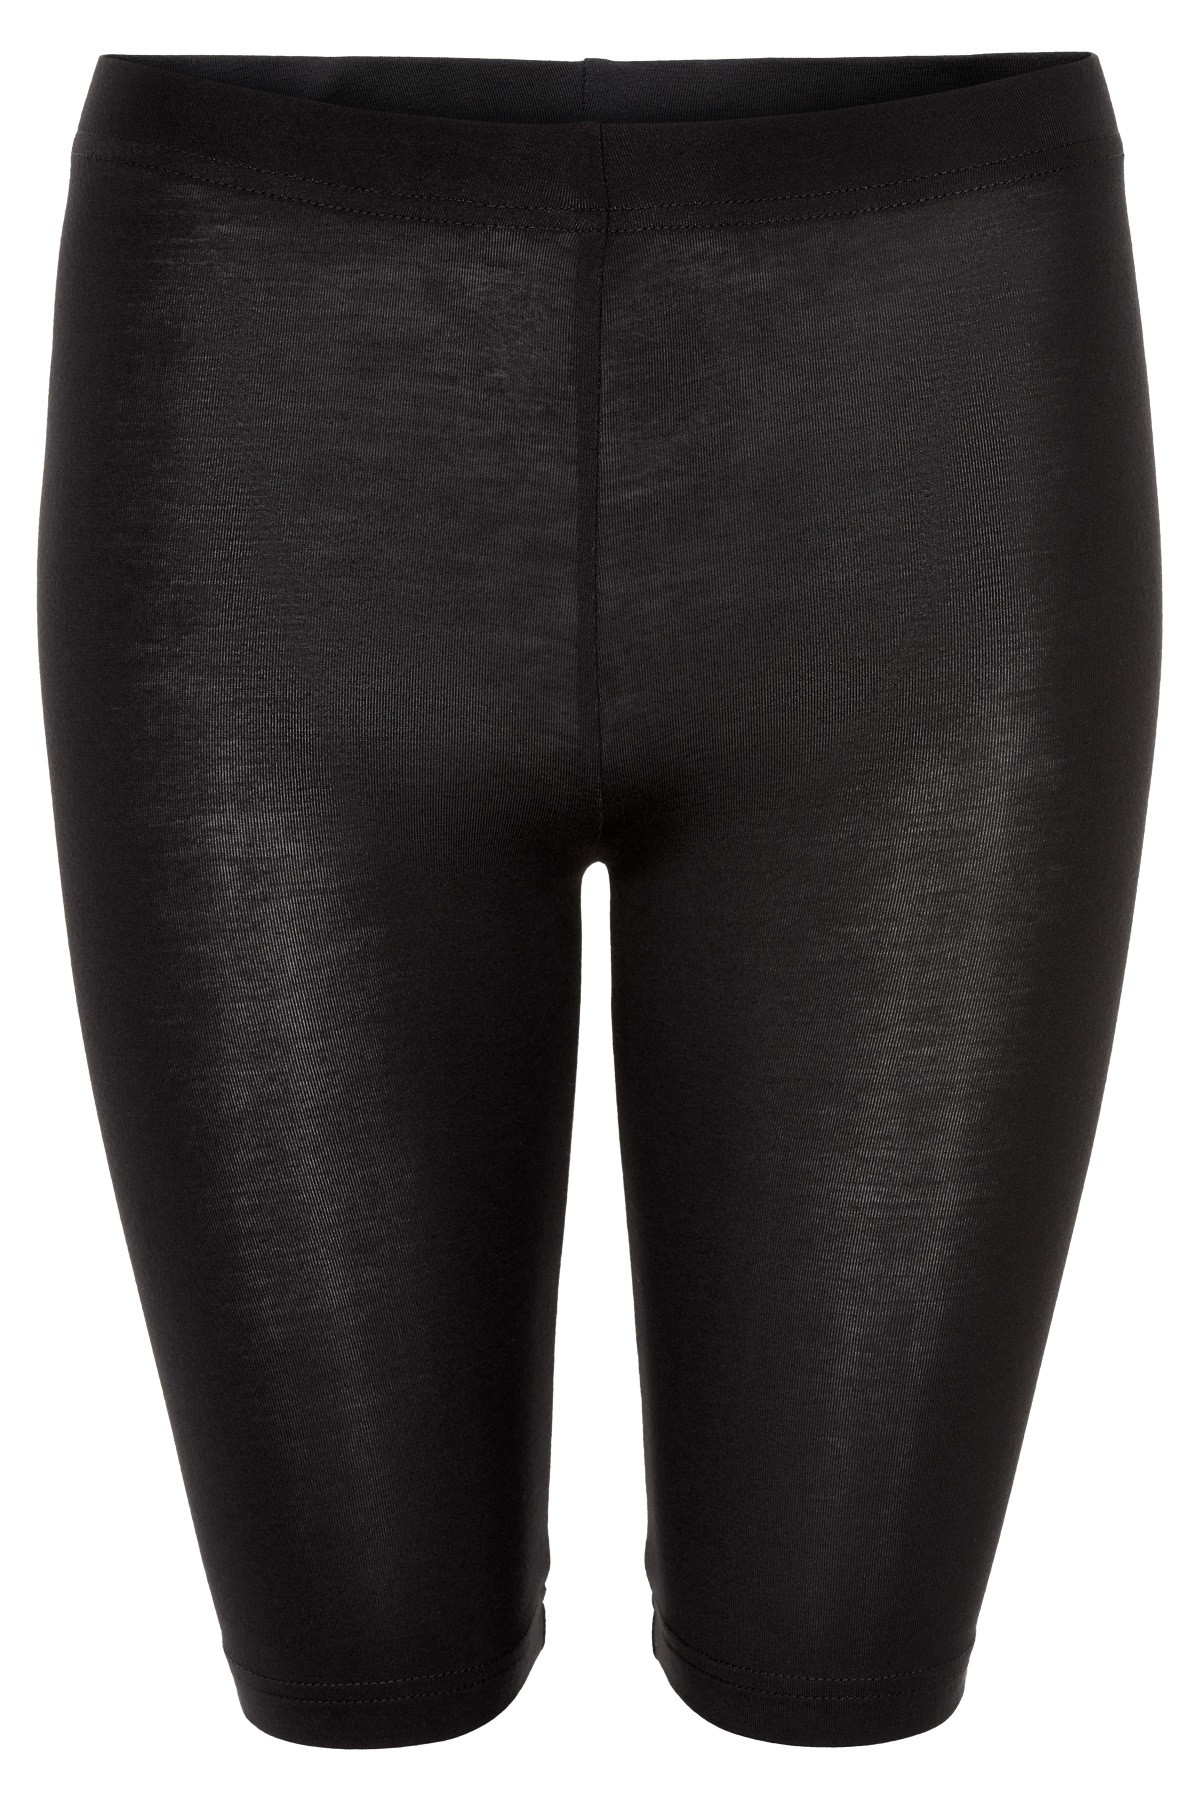 NOA NOA SHORT LEGGINGS 1-9349-2 00000 (Black, S)